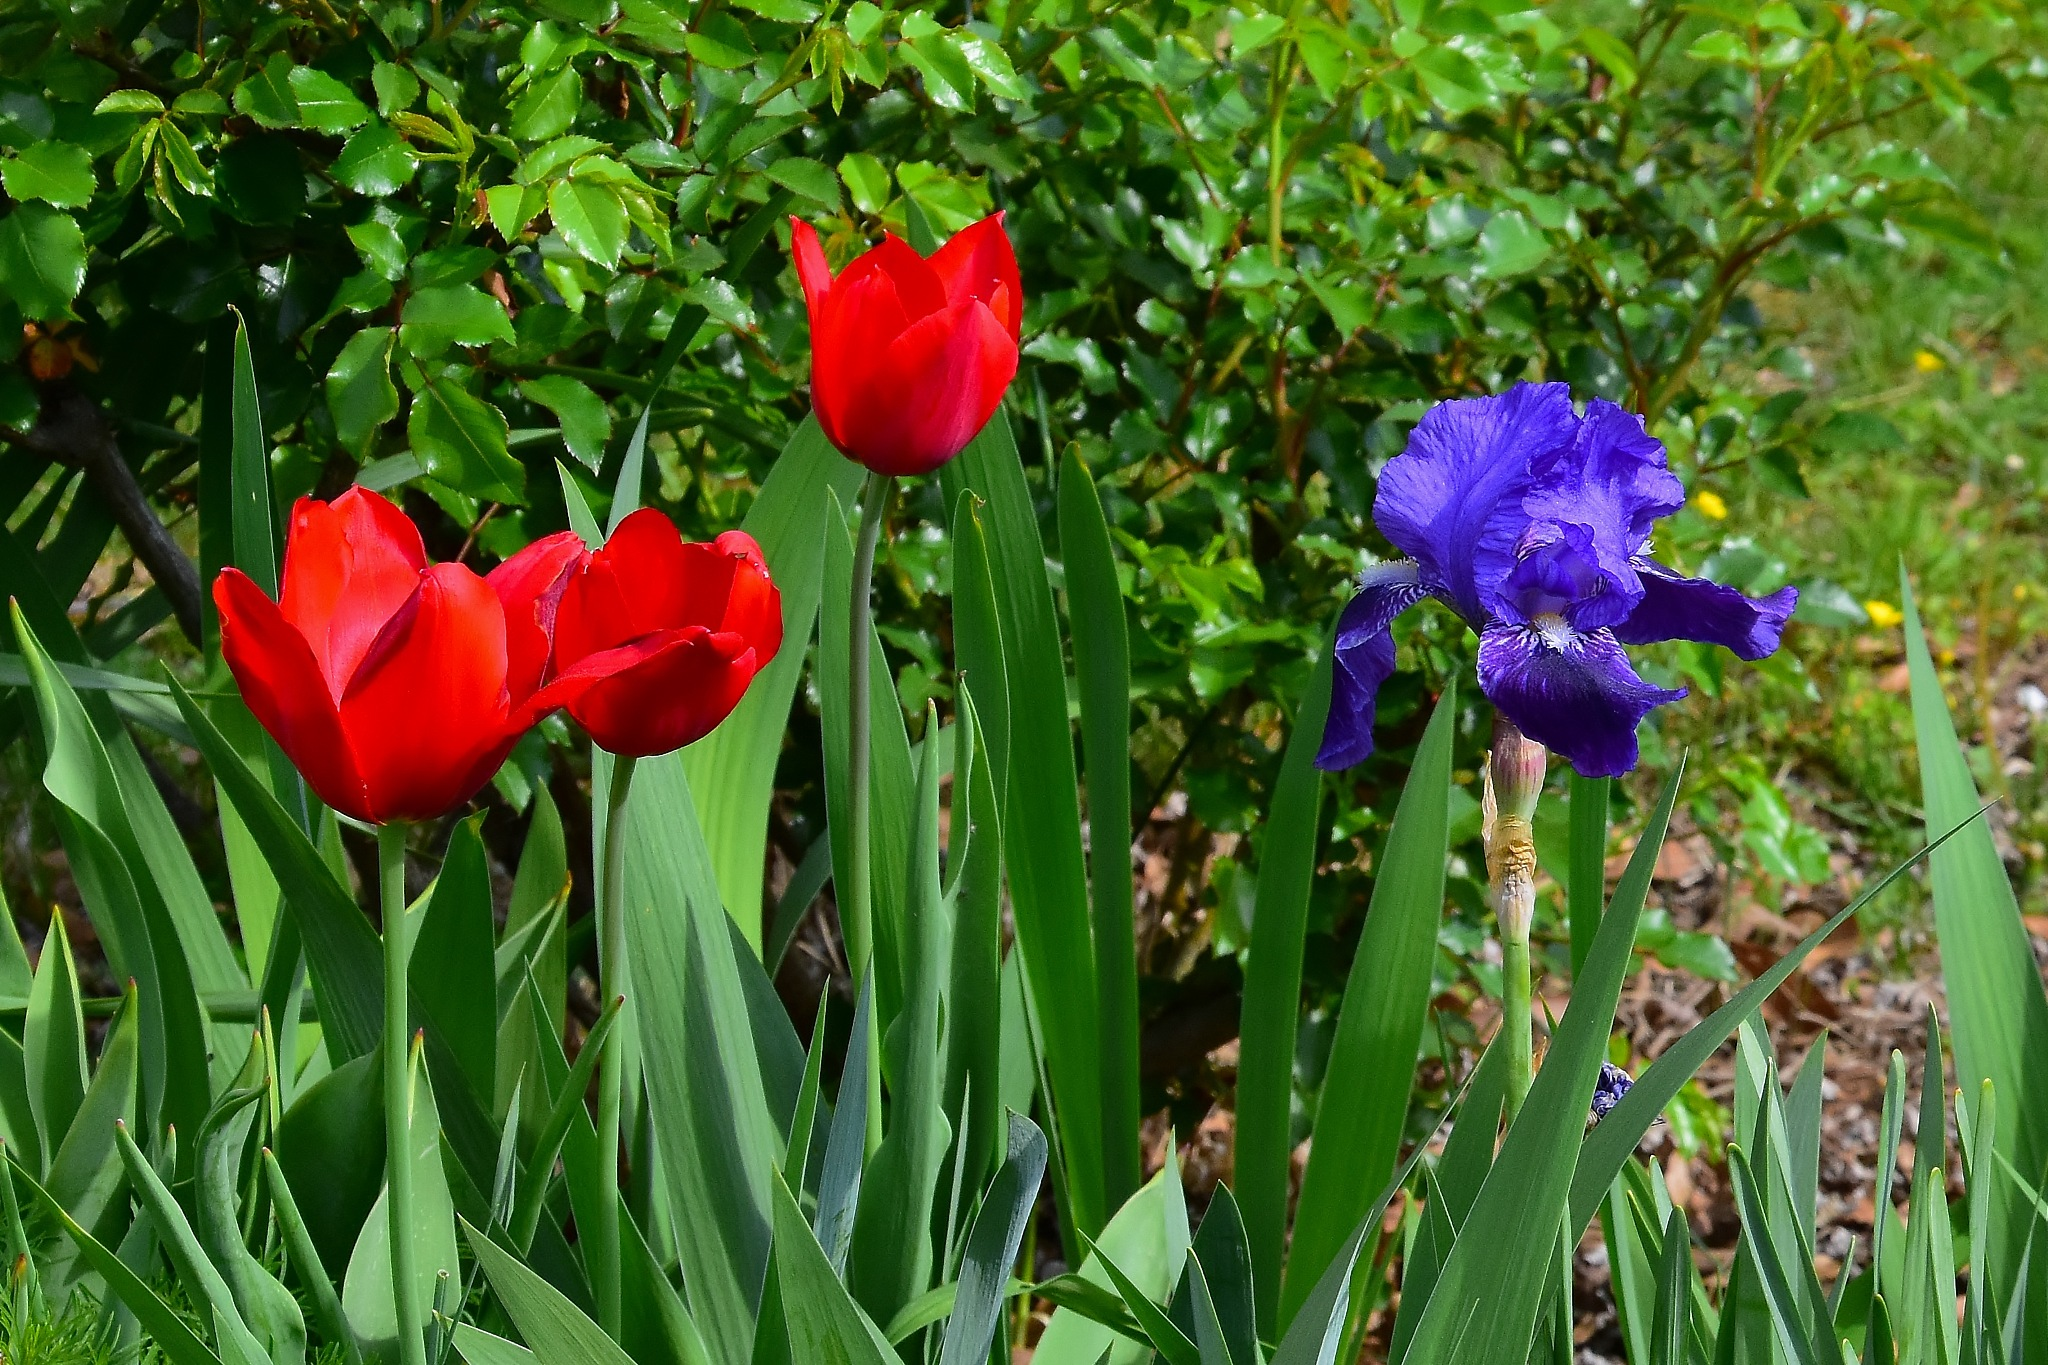 Spring Blooms 3 by Greg Knott